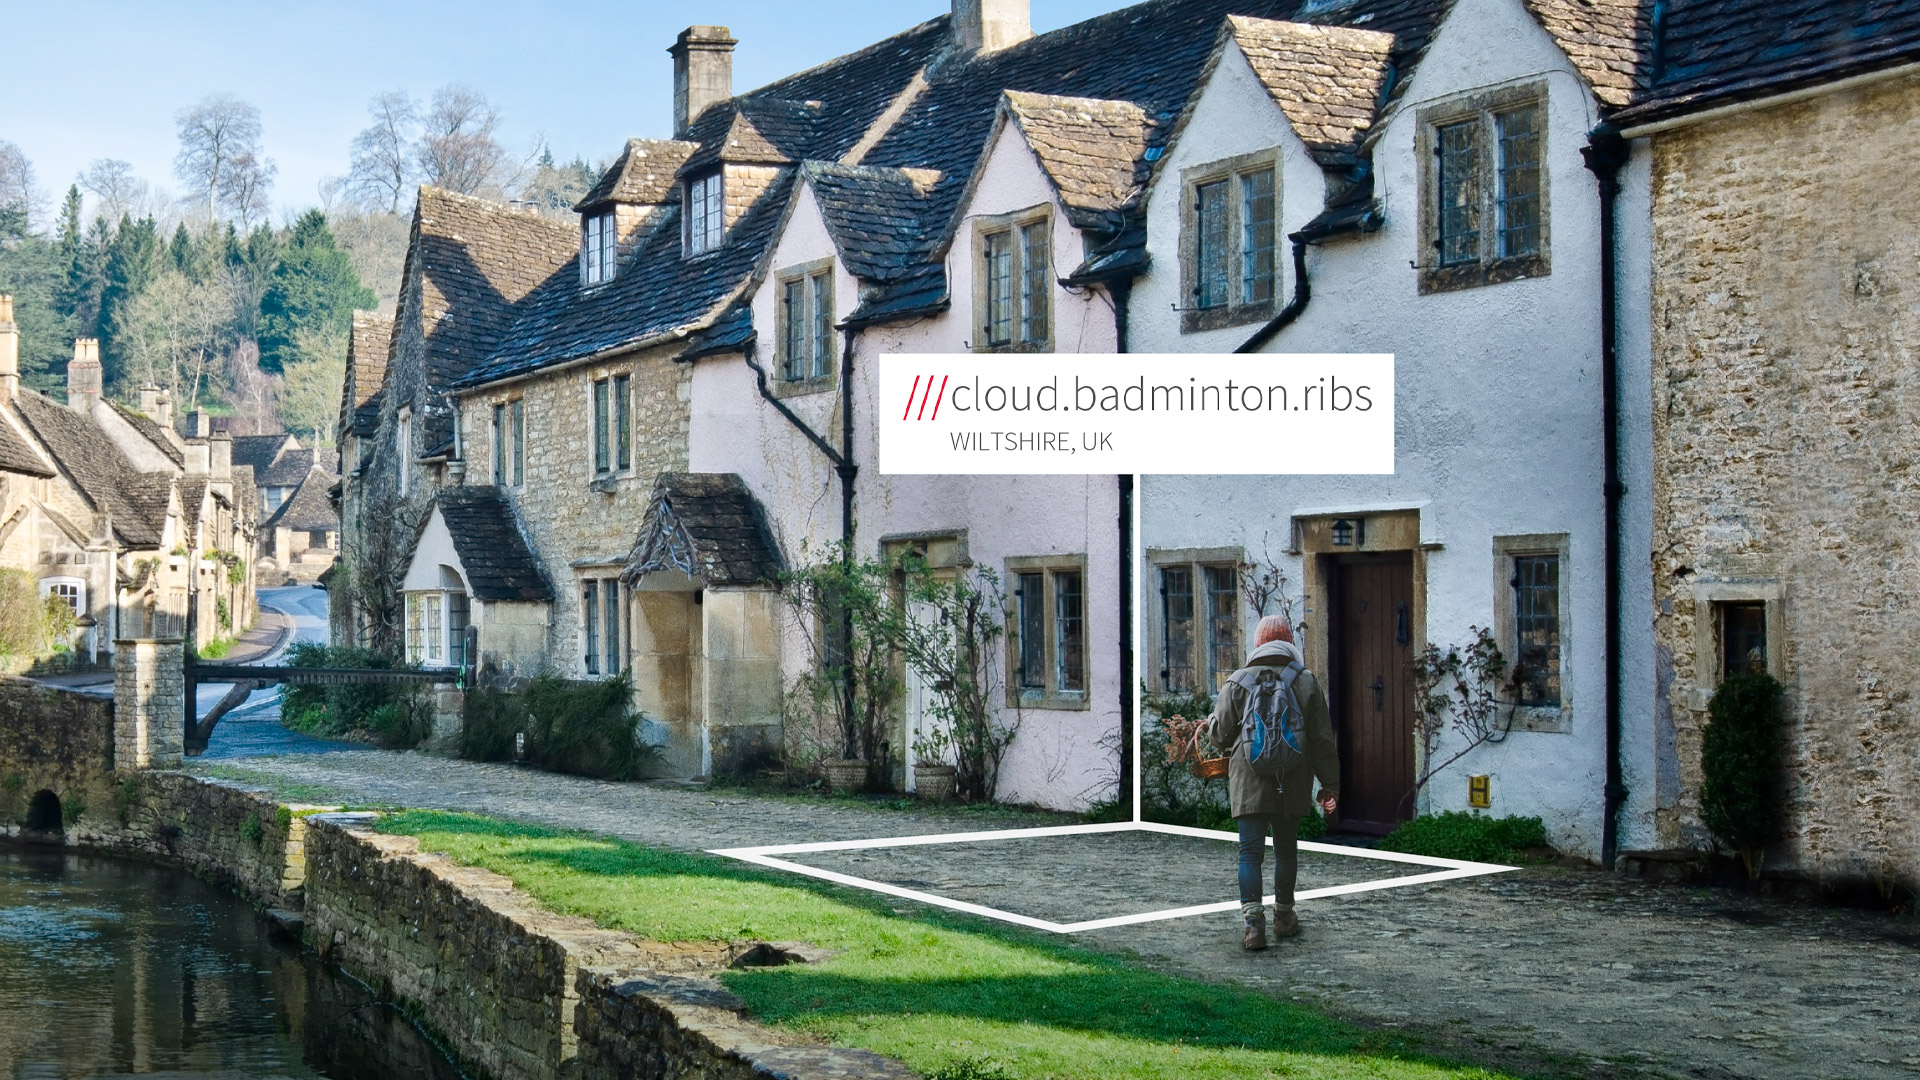 cobbled street with cottages at 3 word address cloud.badminton.ribs